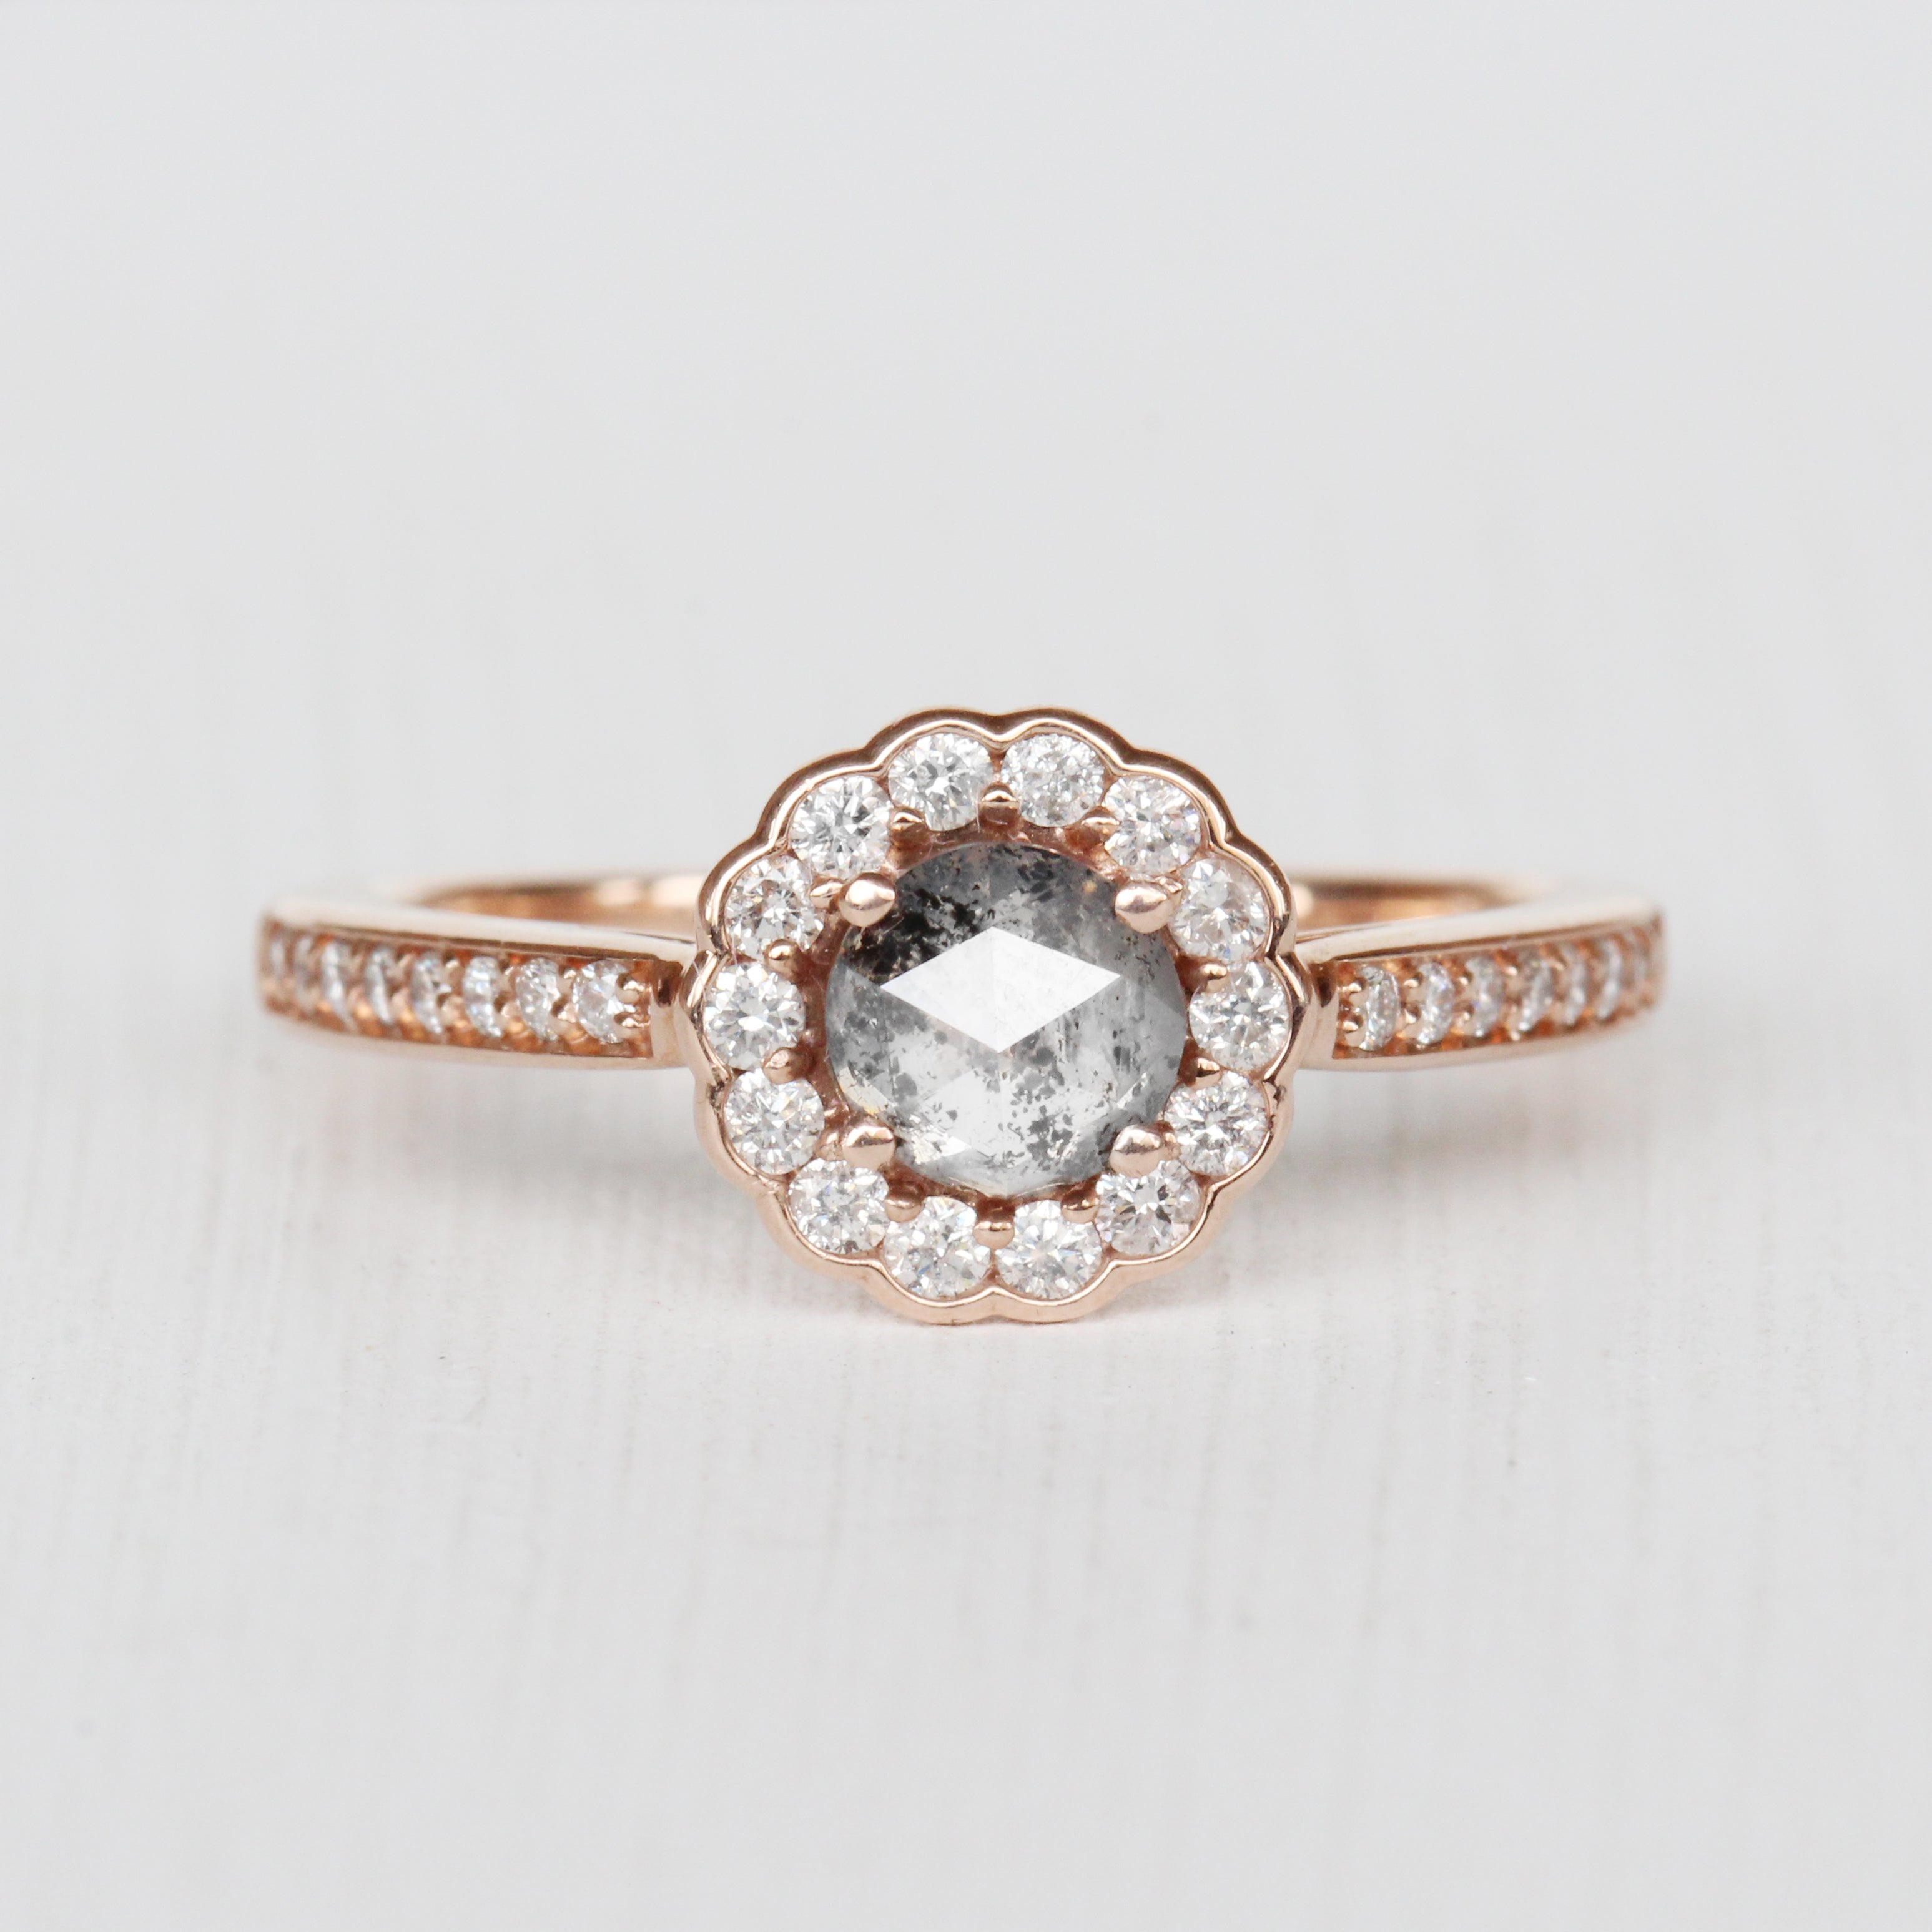 Poppy Ring with a Celestial Diamond in 10k Rose Gold - Ready to Size and Ship - Celestial Diamonds ® by Midwinter Co.